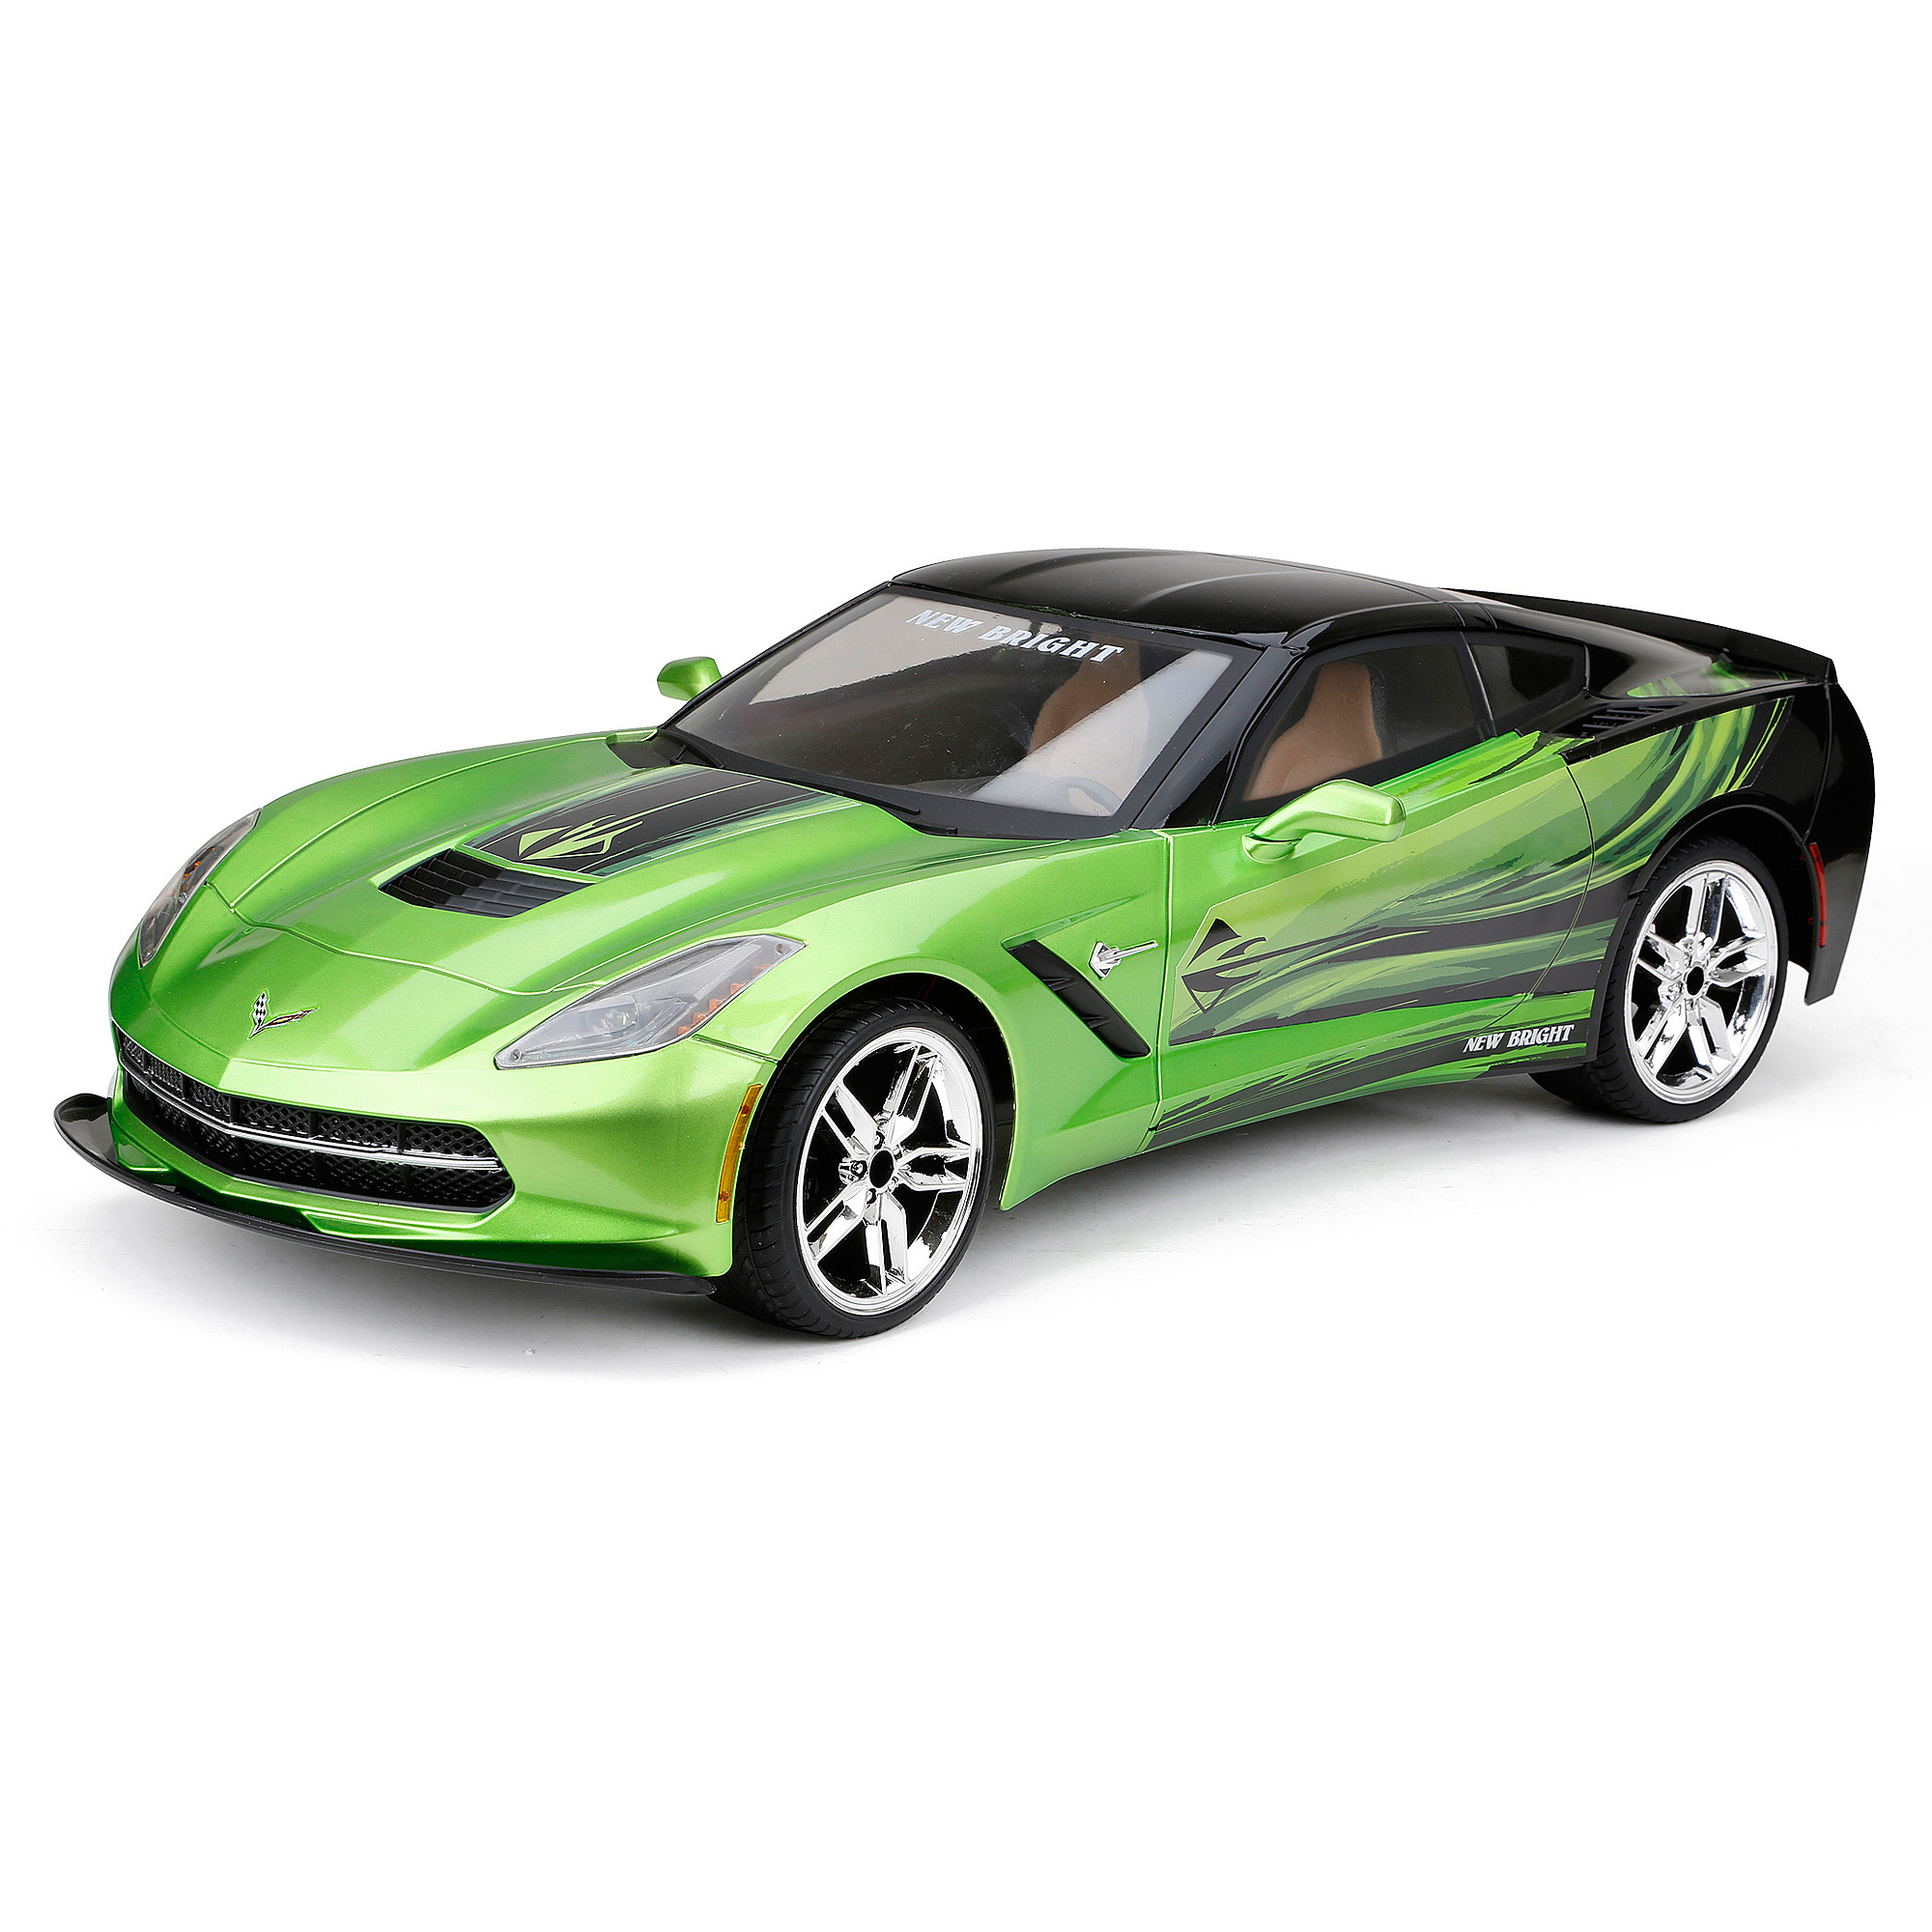 New Bright 1:8 Radio Control Full-Function 9.6V Corvette C7, Green